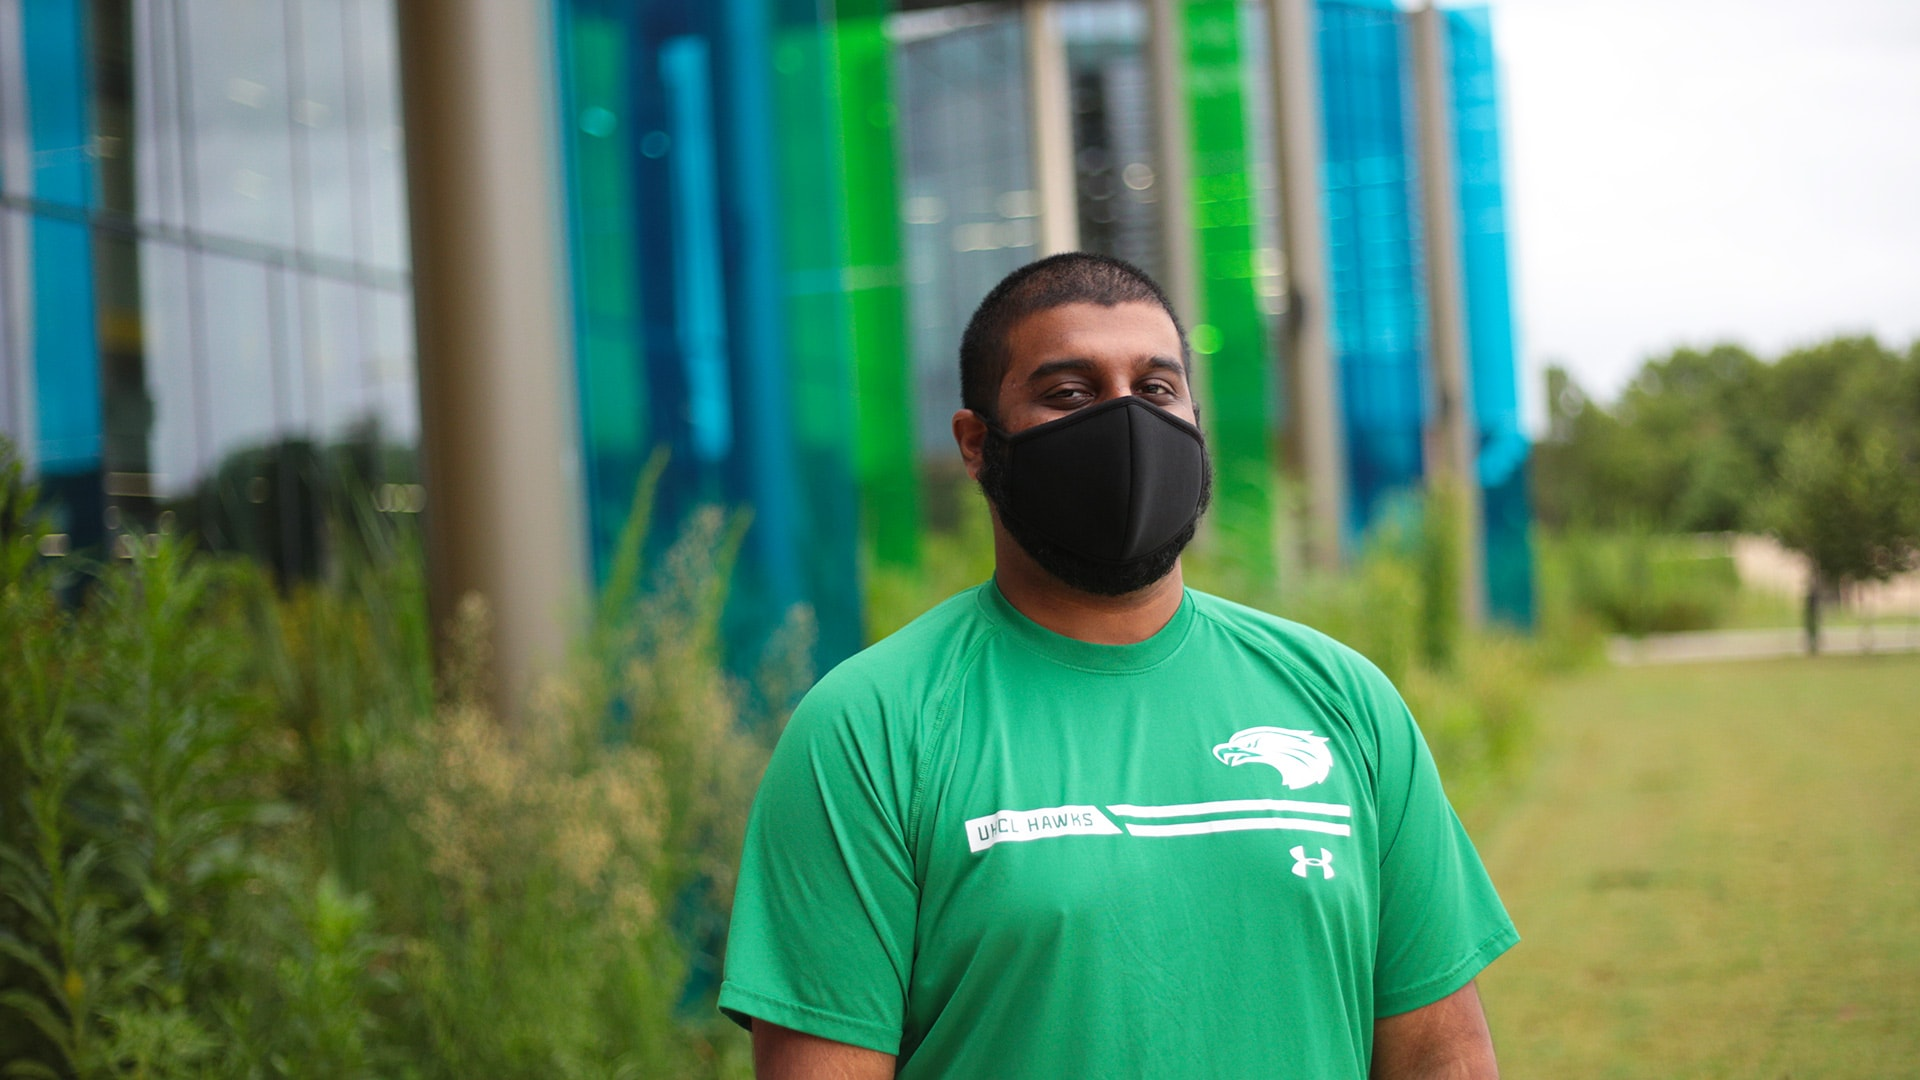 uhcl student in mask